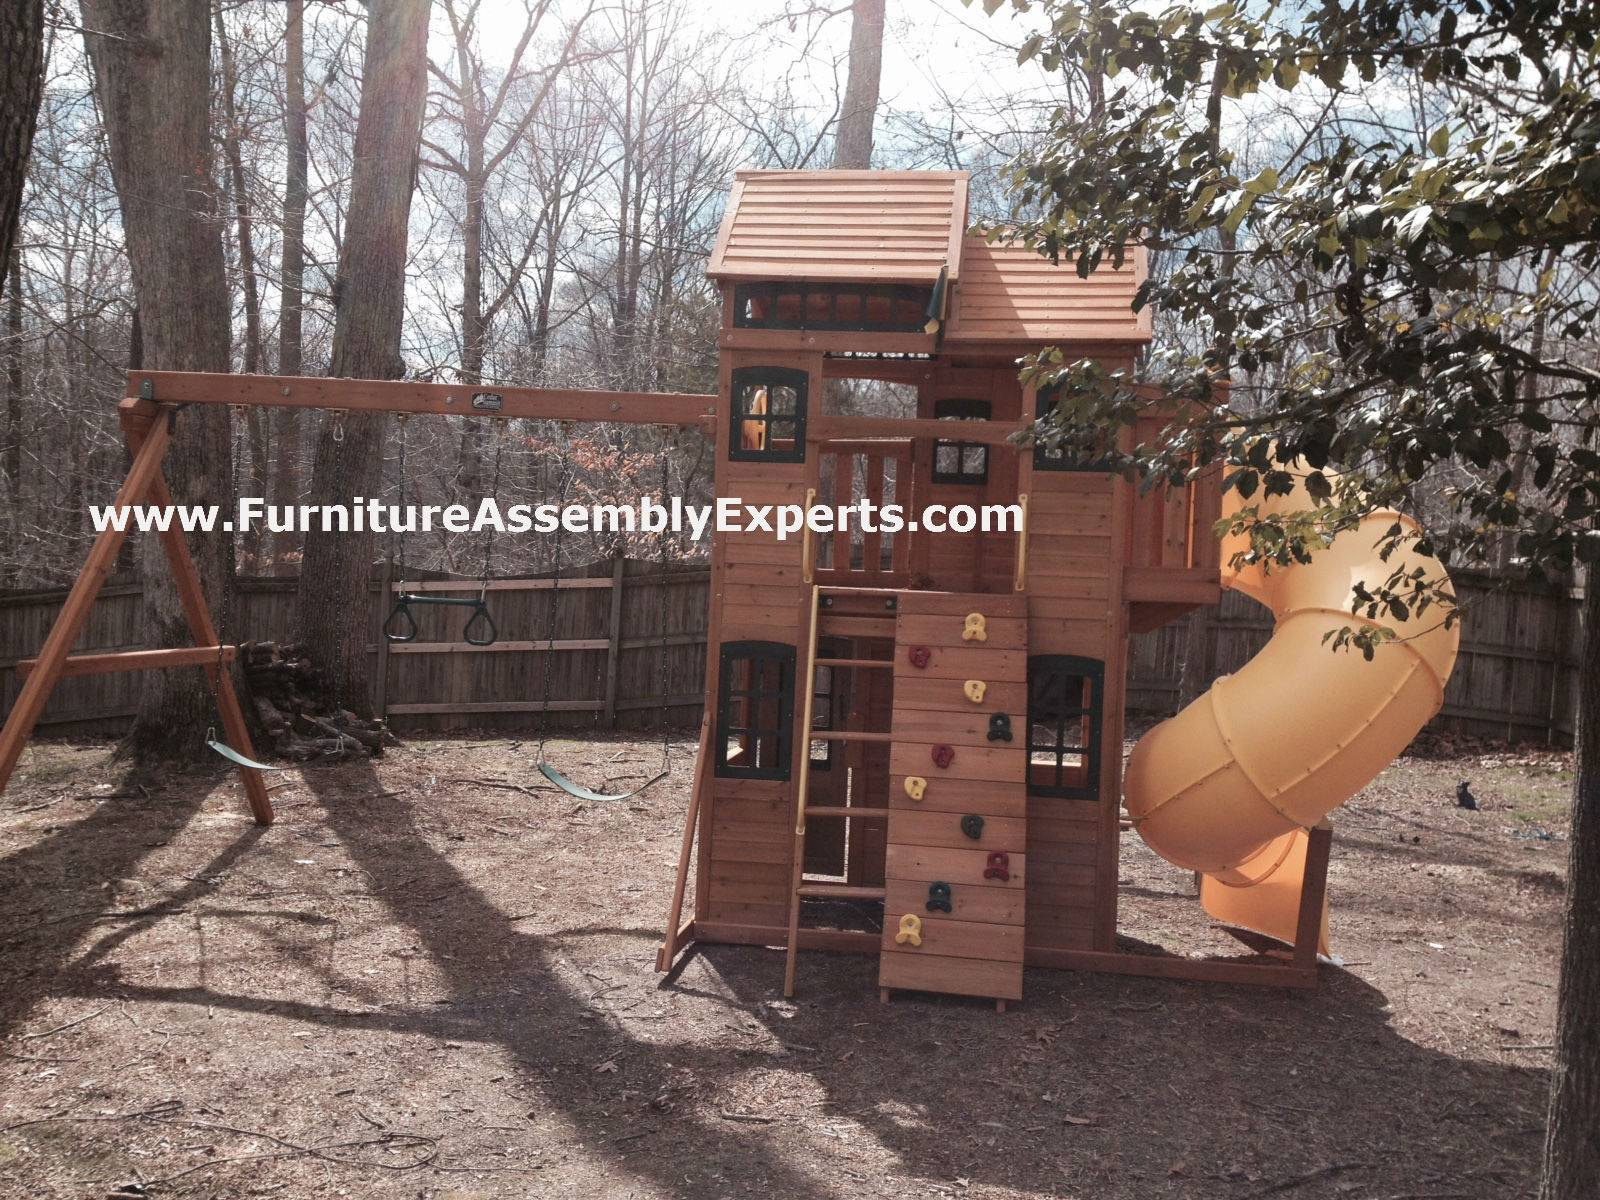 costco swing set assembly service in DC MD VA